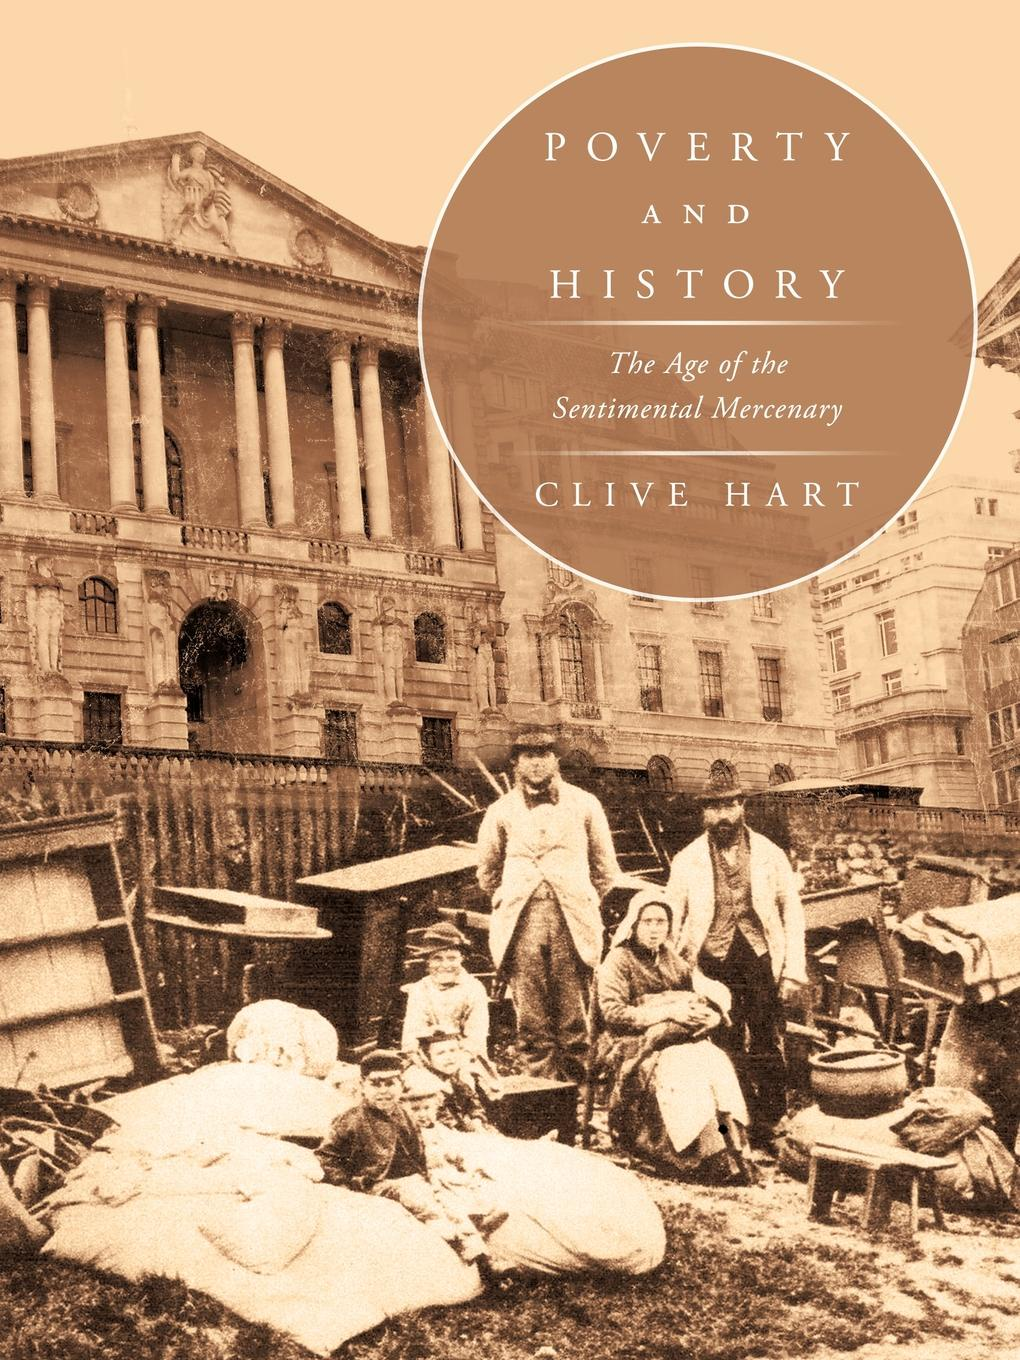 цены Clive Hart Poverty and History. The Age of the Sentimental Mercenary